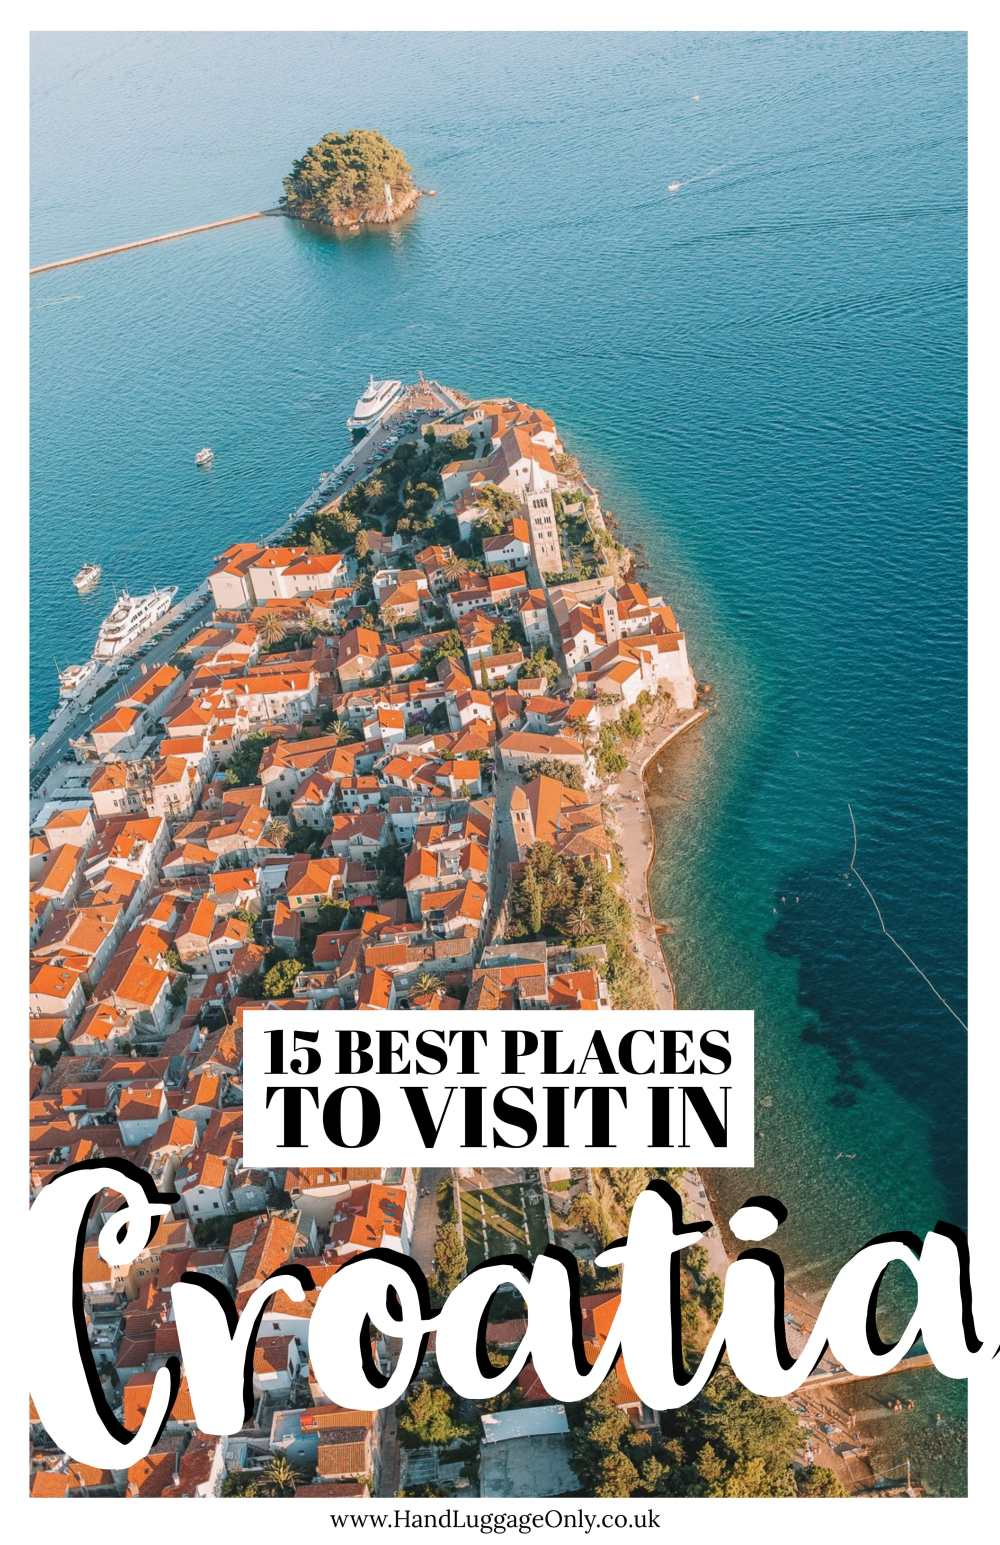 15 Best Places In Croatia To Visit (1)